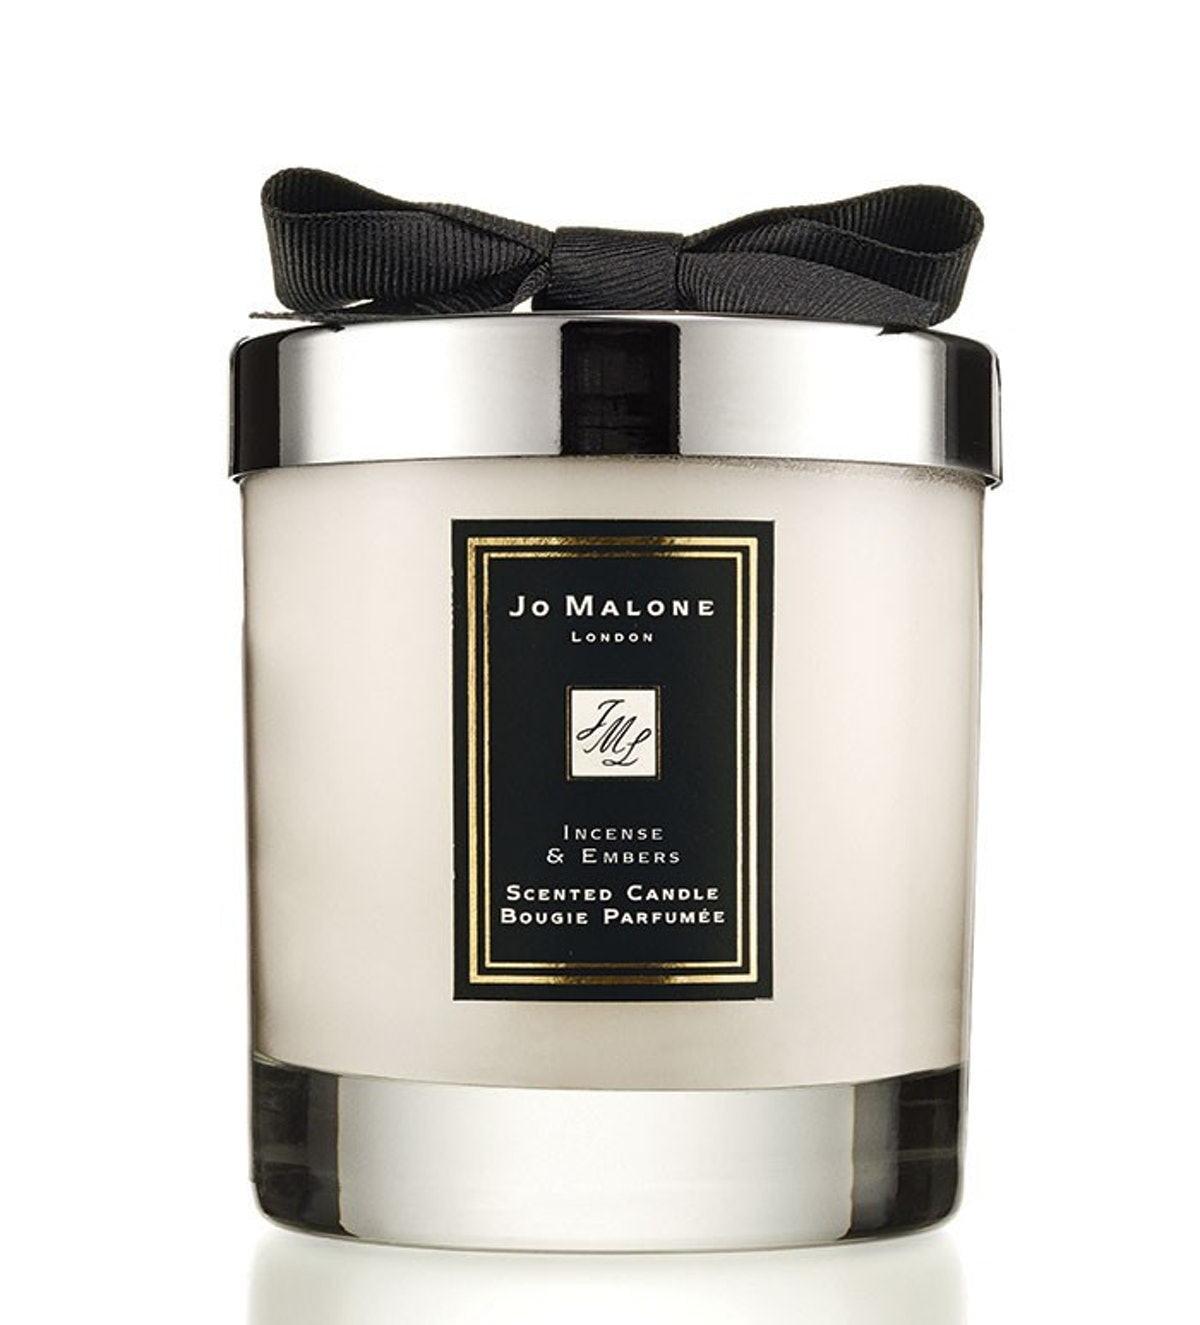 Charlotte Stockdale For Jo Malone candle, $65, [nemainmarcus.com](http://rstyle.me/~1h2ww).